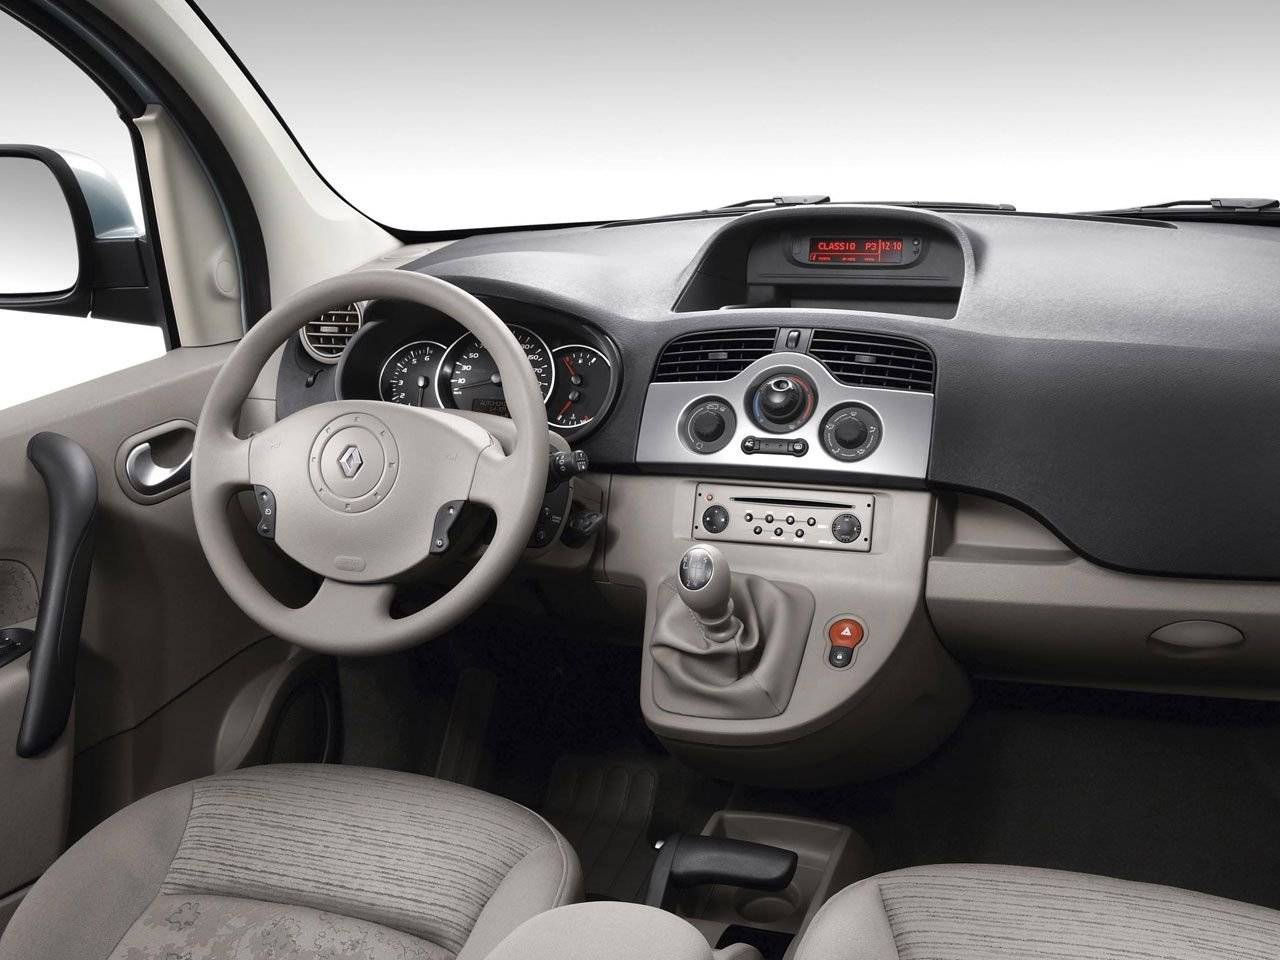 dimension interieur kangoo les dimensions de la renault kangoo en d tail sur renault belgique. Black Bedroom Furniture Sets. Home Design Ideas